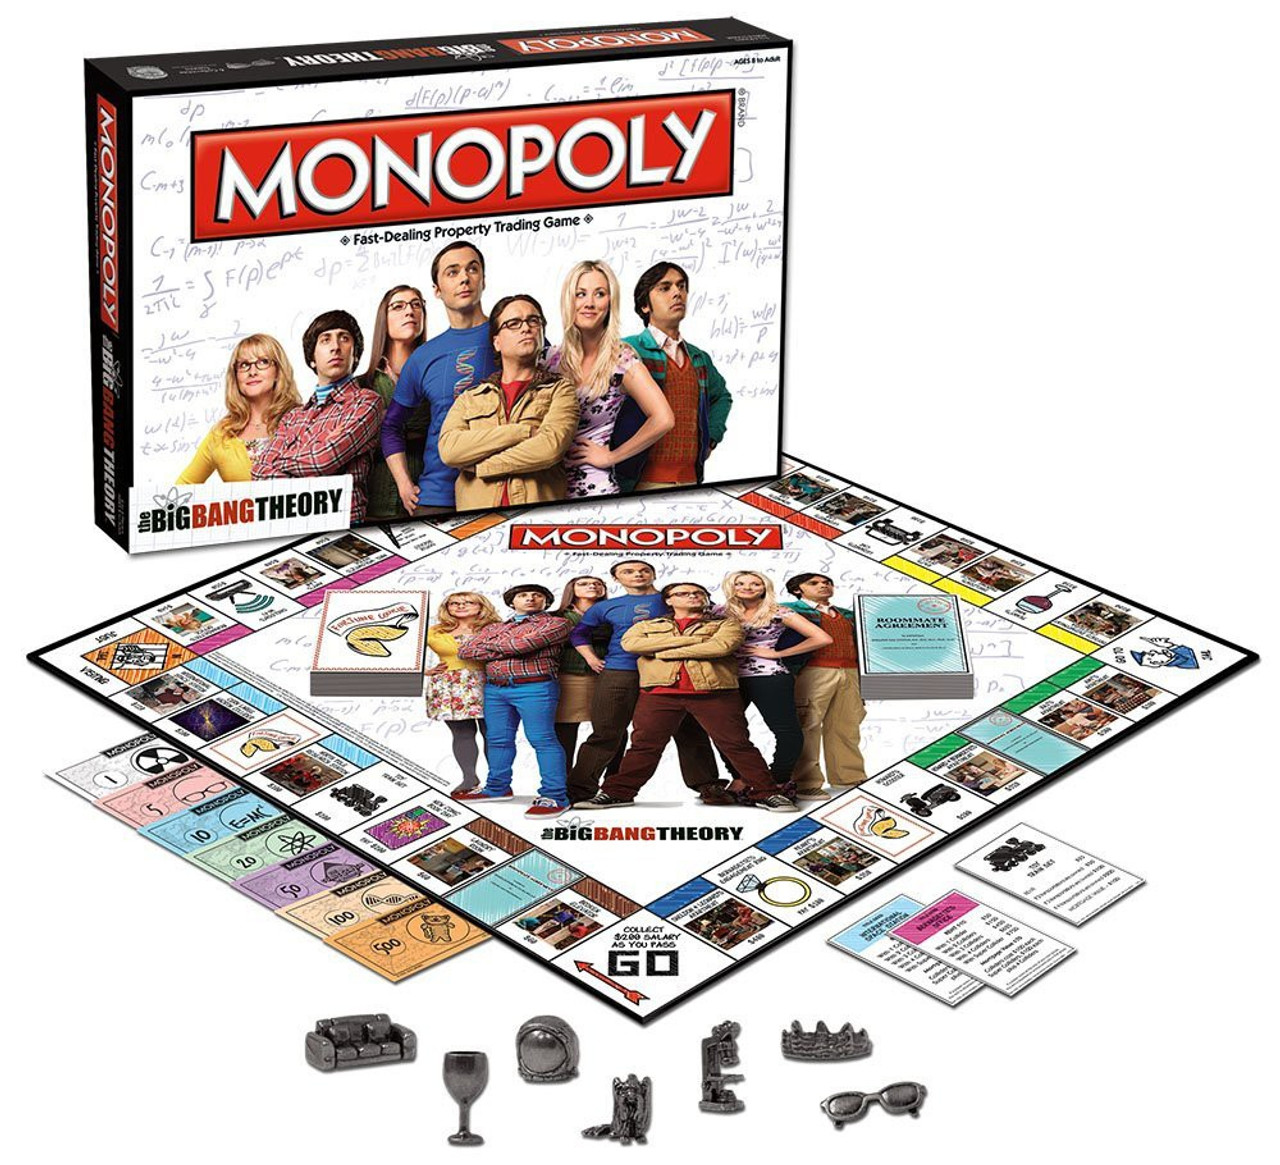 NEU MONOPOLY The Big Bang Theory Fast-Dealing Property Trading Game Englisch